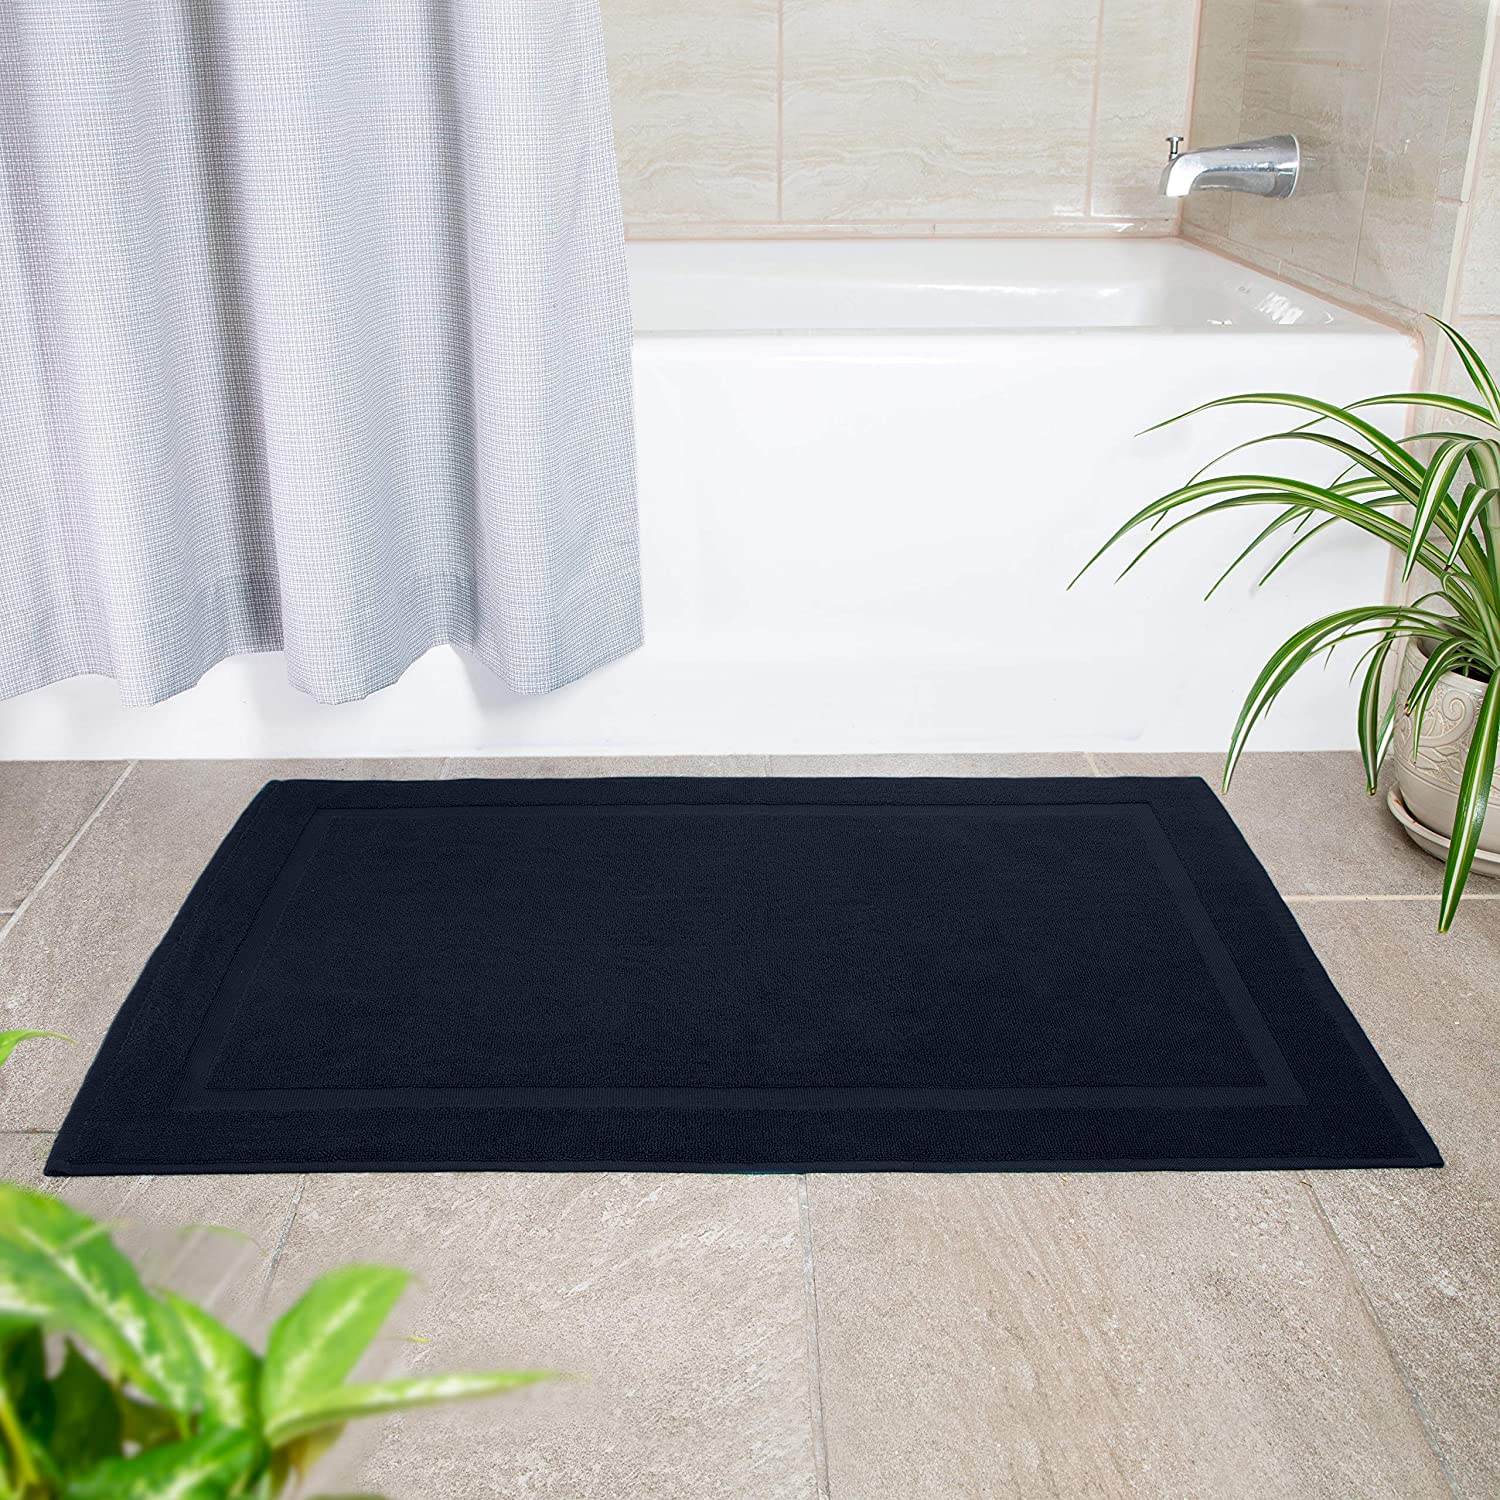 100/% Ringspun Cotton Tub Mat 21x34 2 Pack Bath Mat Black Cotton Craft Oversized 21x34 Heavy Weight 1000 Grams Soft Underfoot 2 Ply Construction Highly Absorbent Easy Care Machine Wash